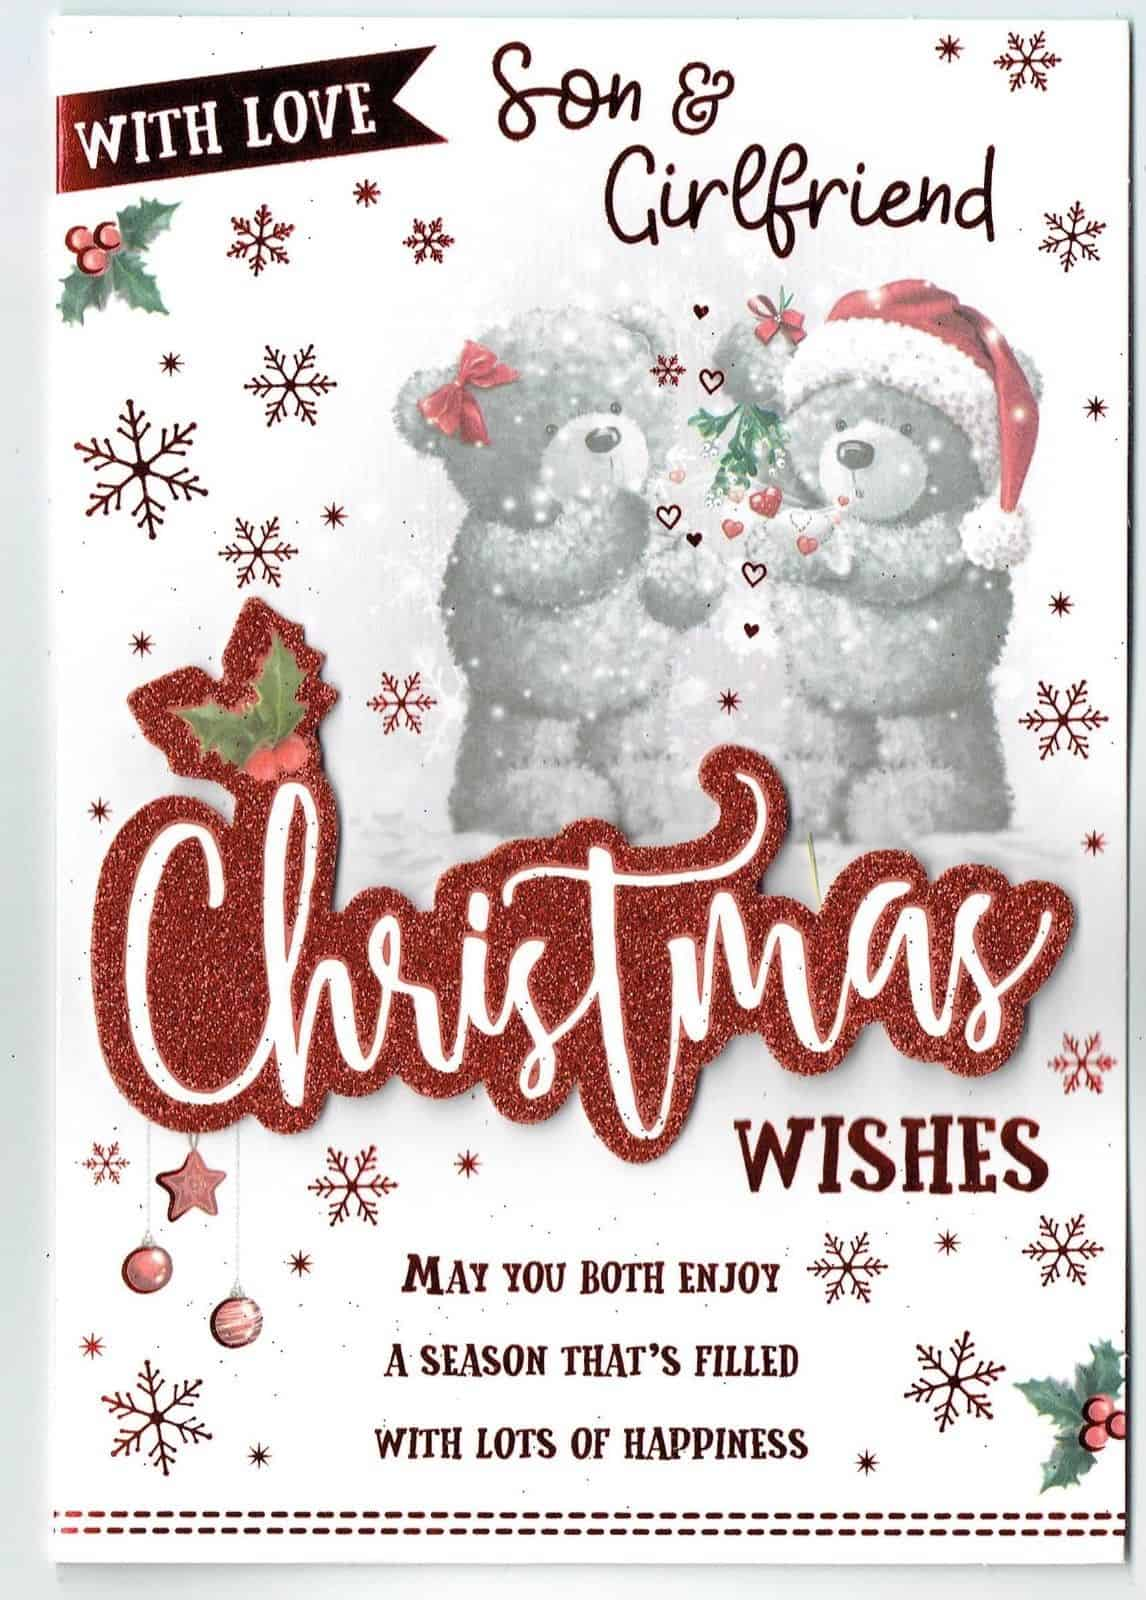 Quality Christmas Card  Cute With Lovely Words DAUGHTER AND SON-IN-LAW